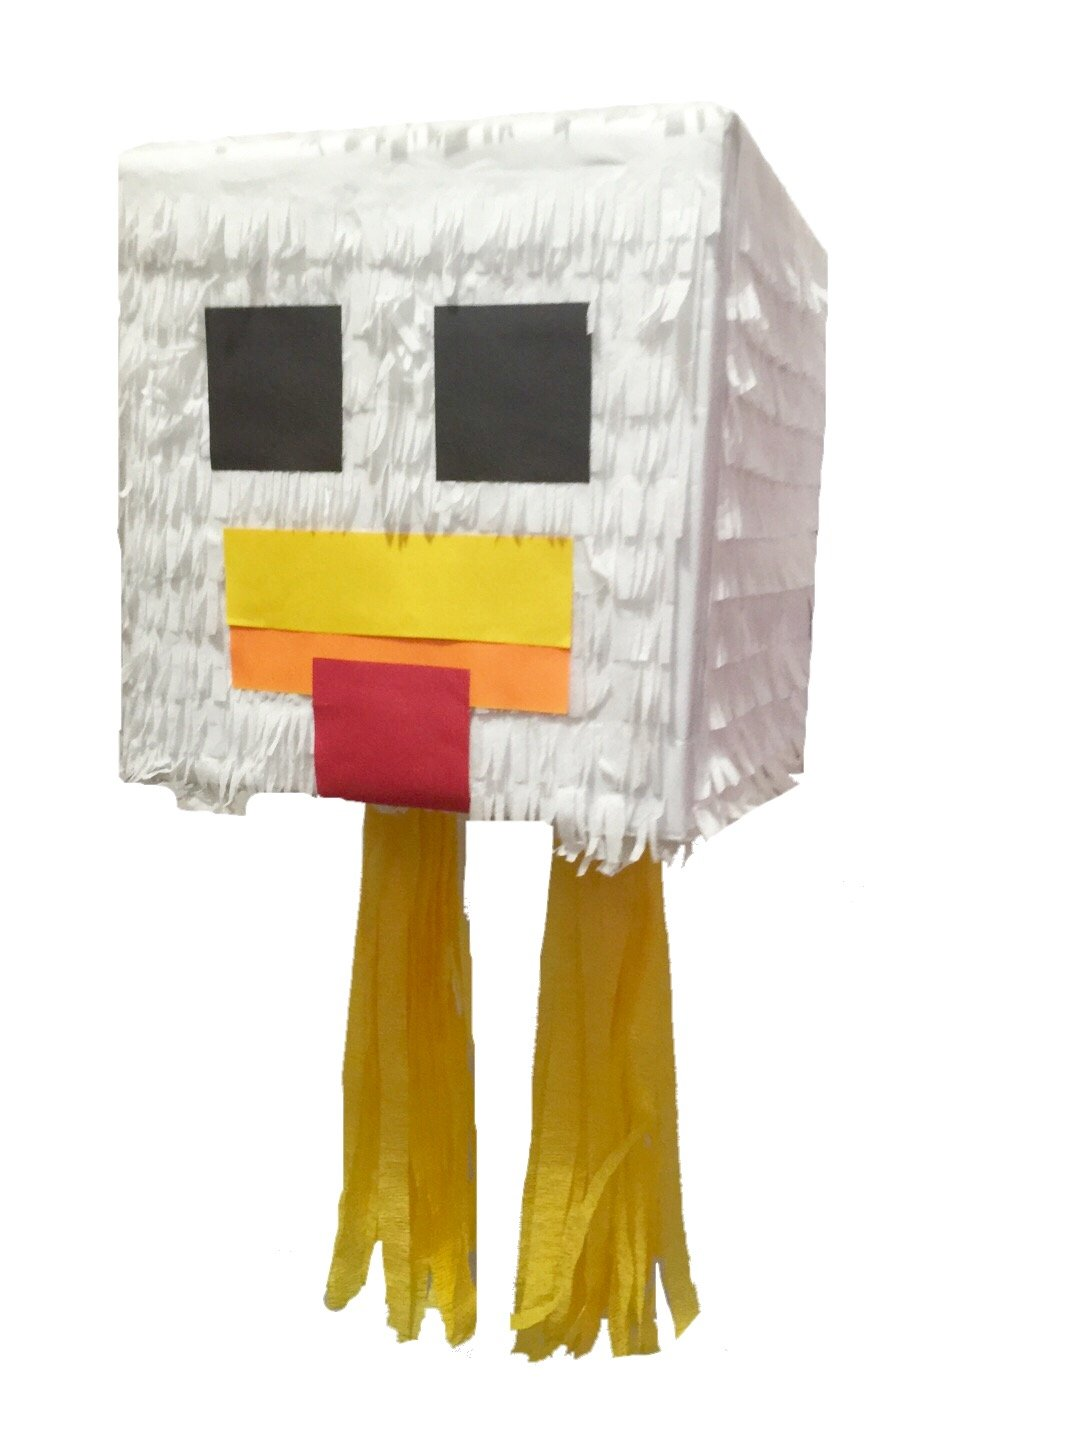 Chicken Inspired Pixelated Theme Pinata Fully Assembled Ready to Use